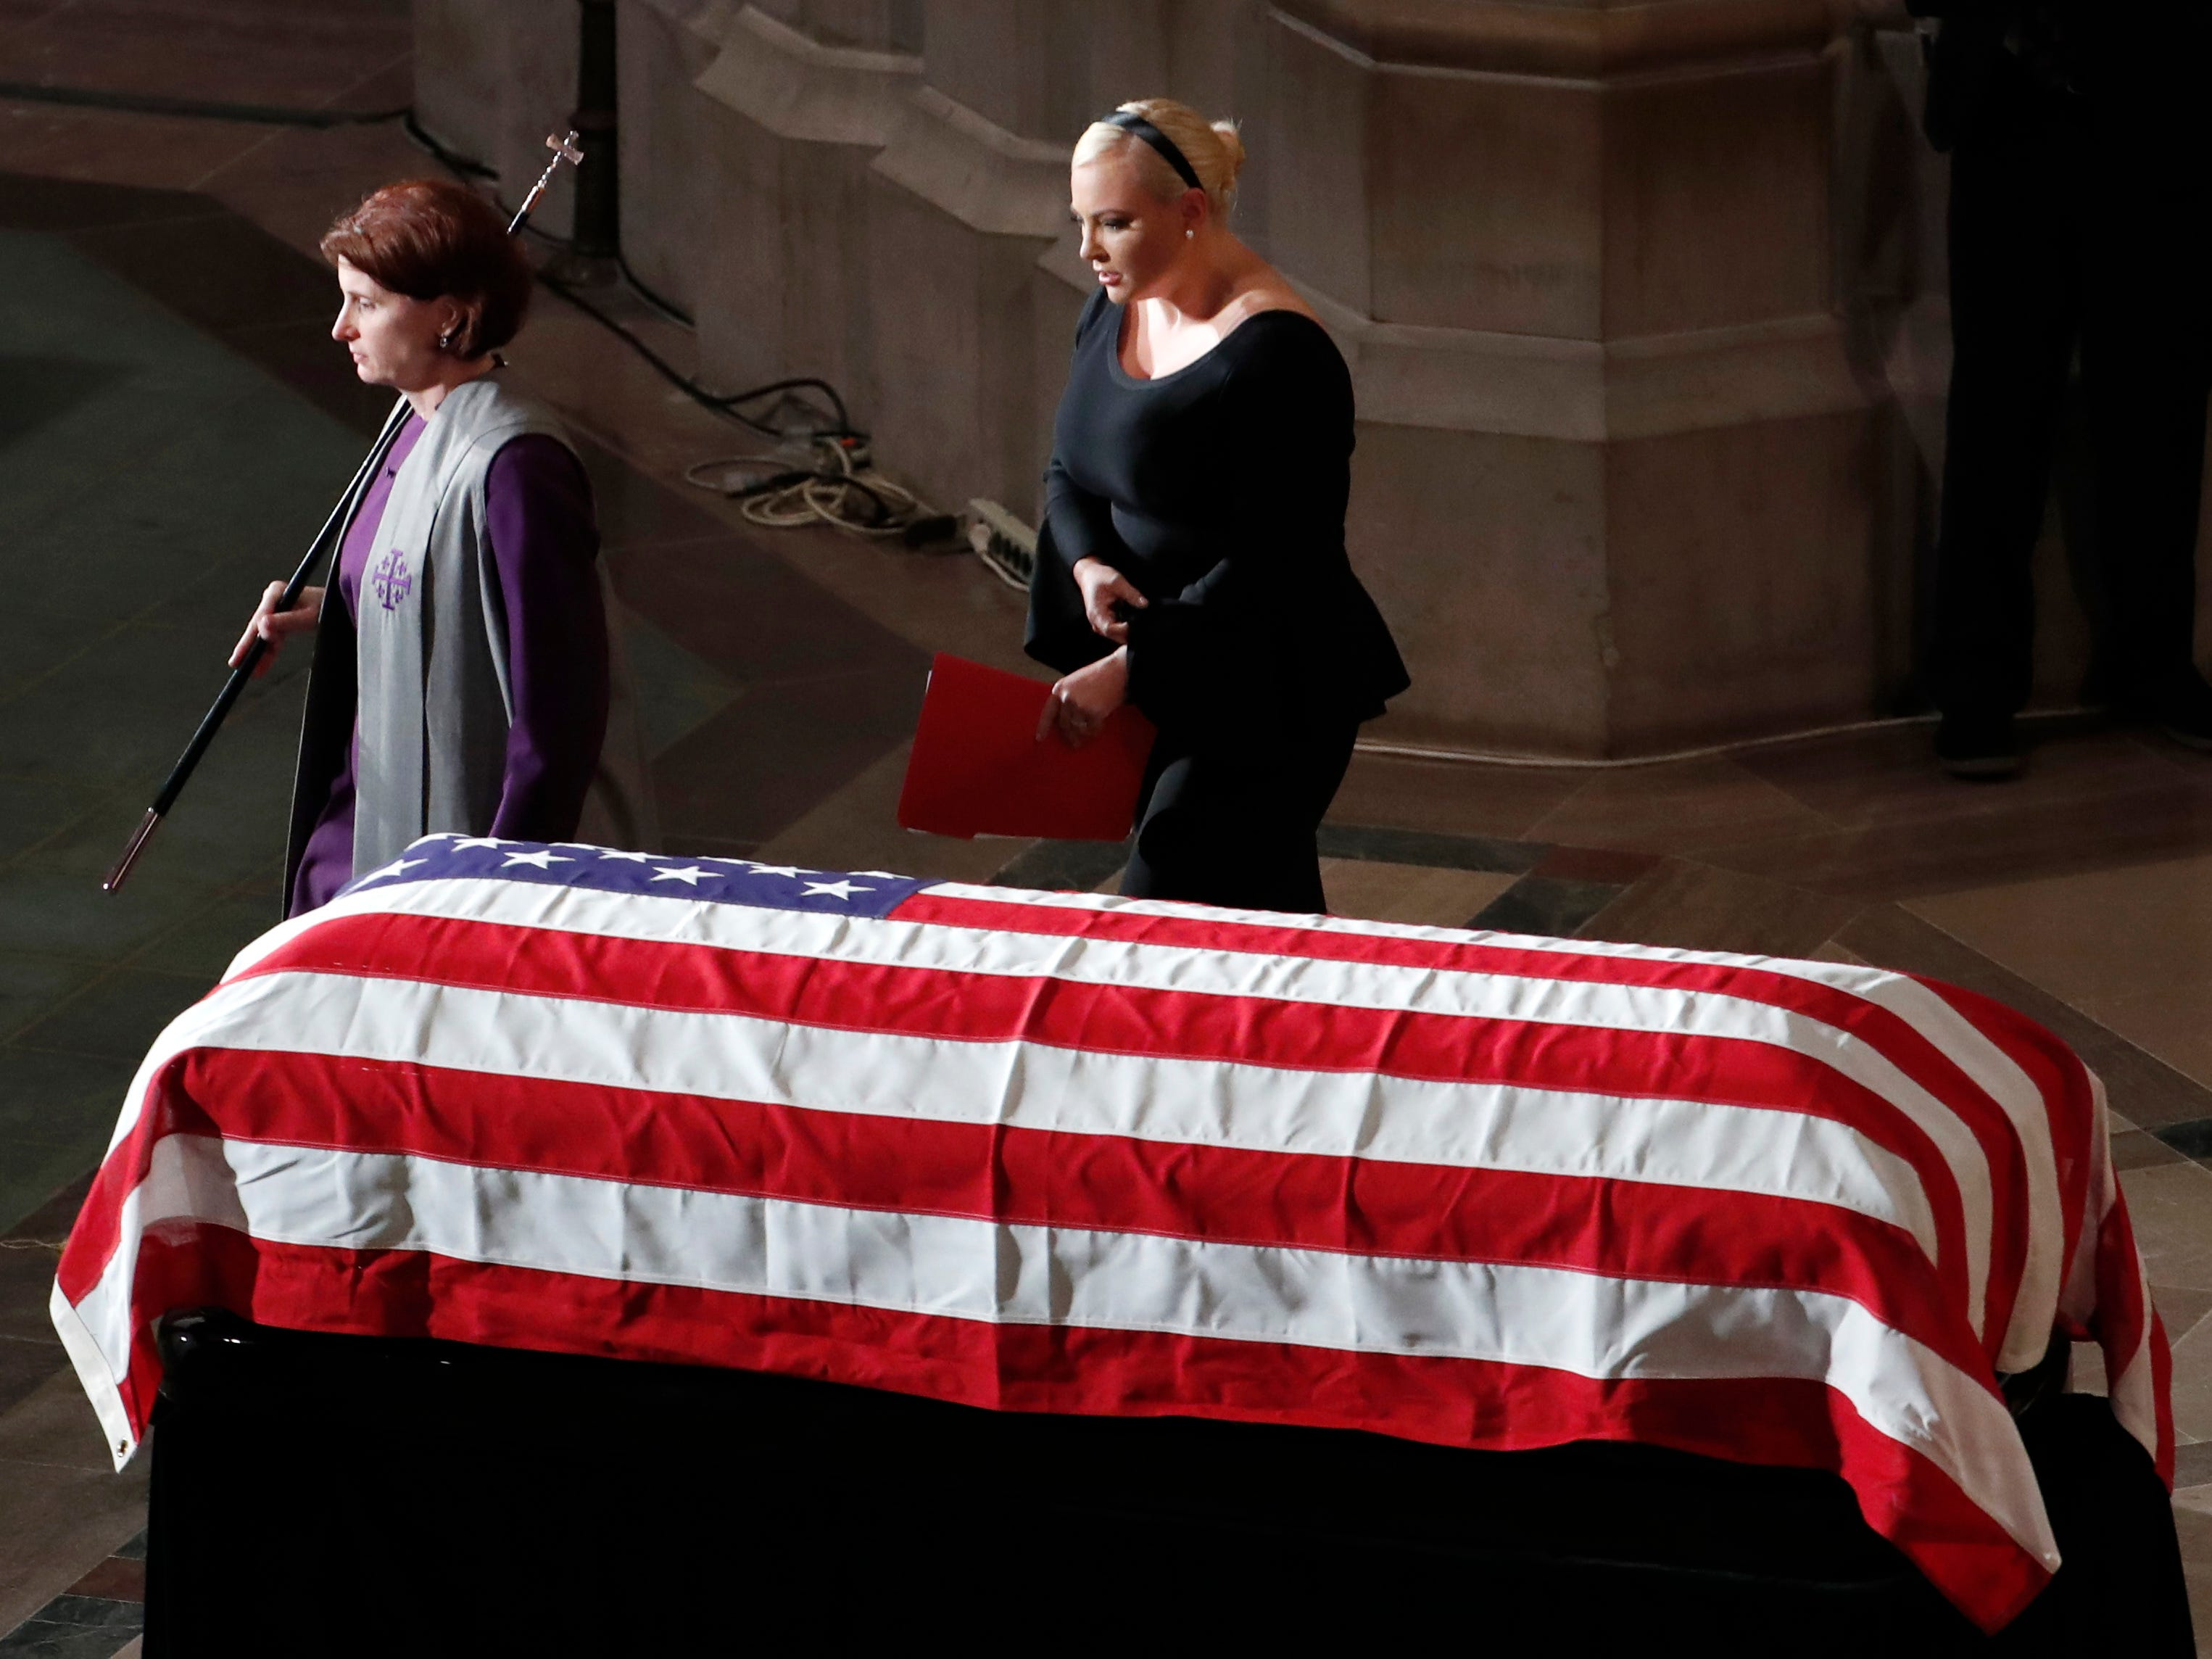 Meghan McCain walks from the podium after speaking at a memorial service for her father, Sen. John McCain, R-Ariz., at Washington National Cathedral in Washington, Saturday, Sept. 1, 2018. McCain died Aug. 25, from brain cancer at age 81. (AP Photo/Pablo Martinez Monsivais)